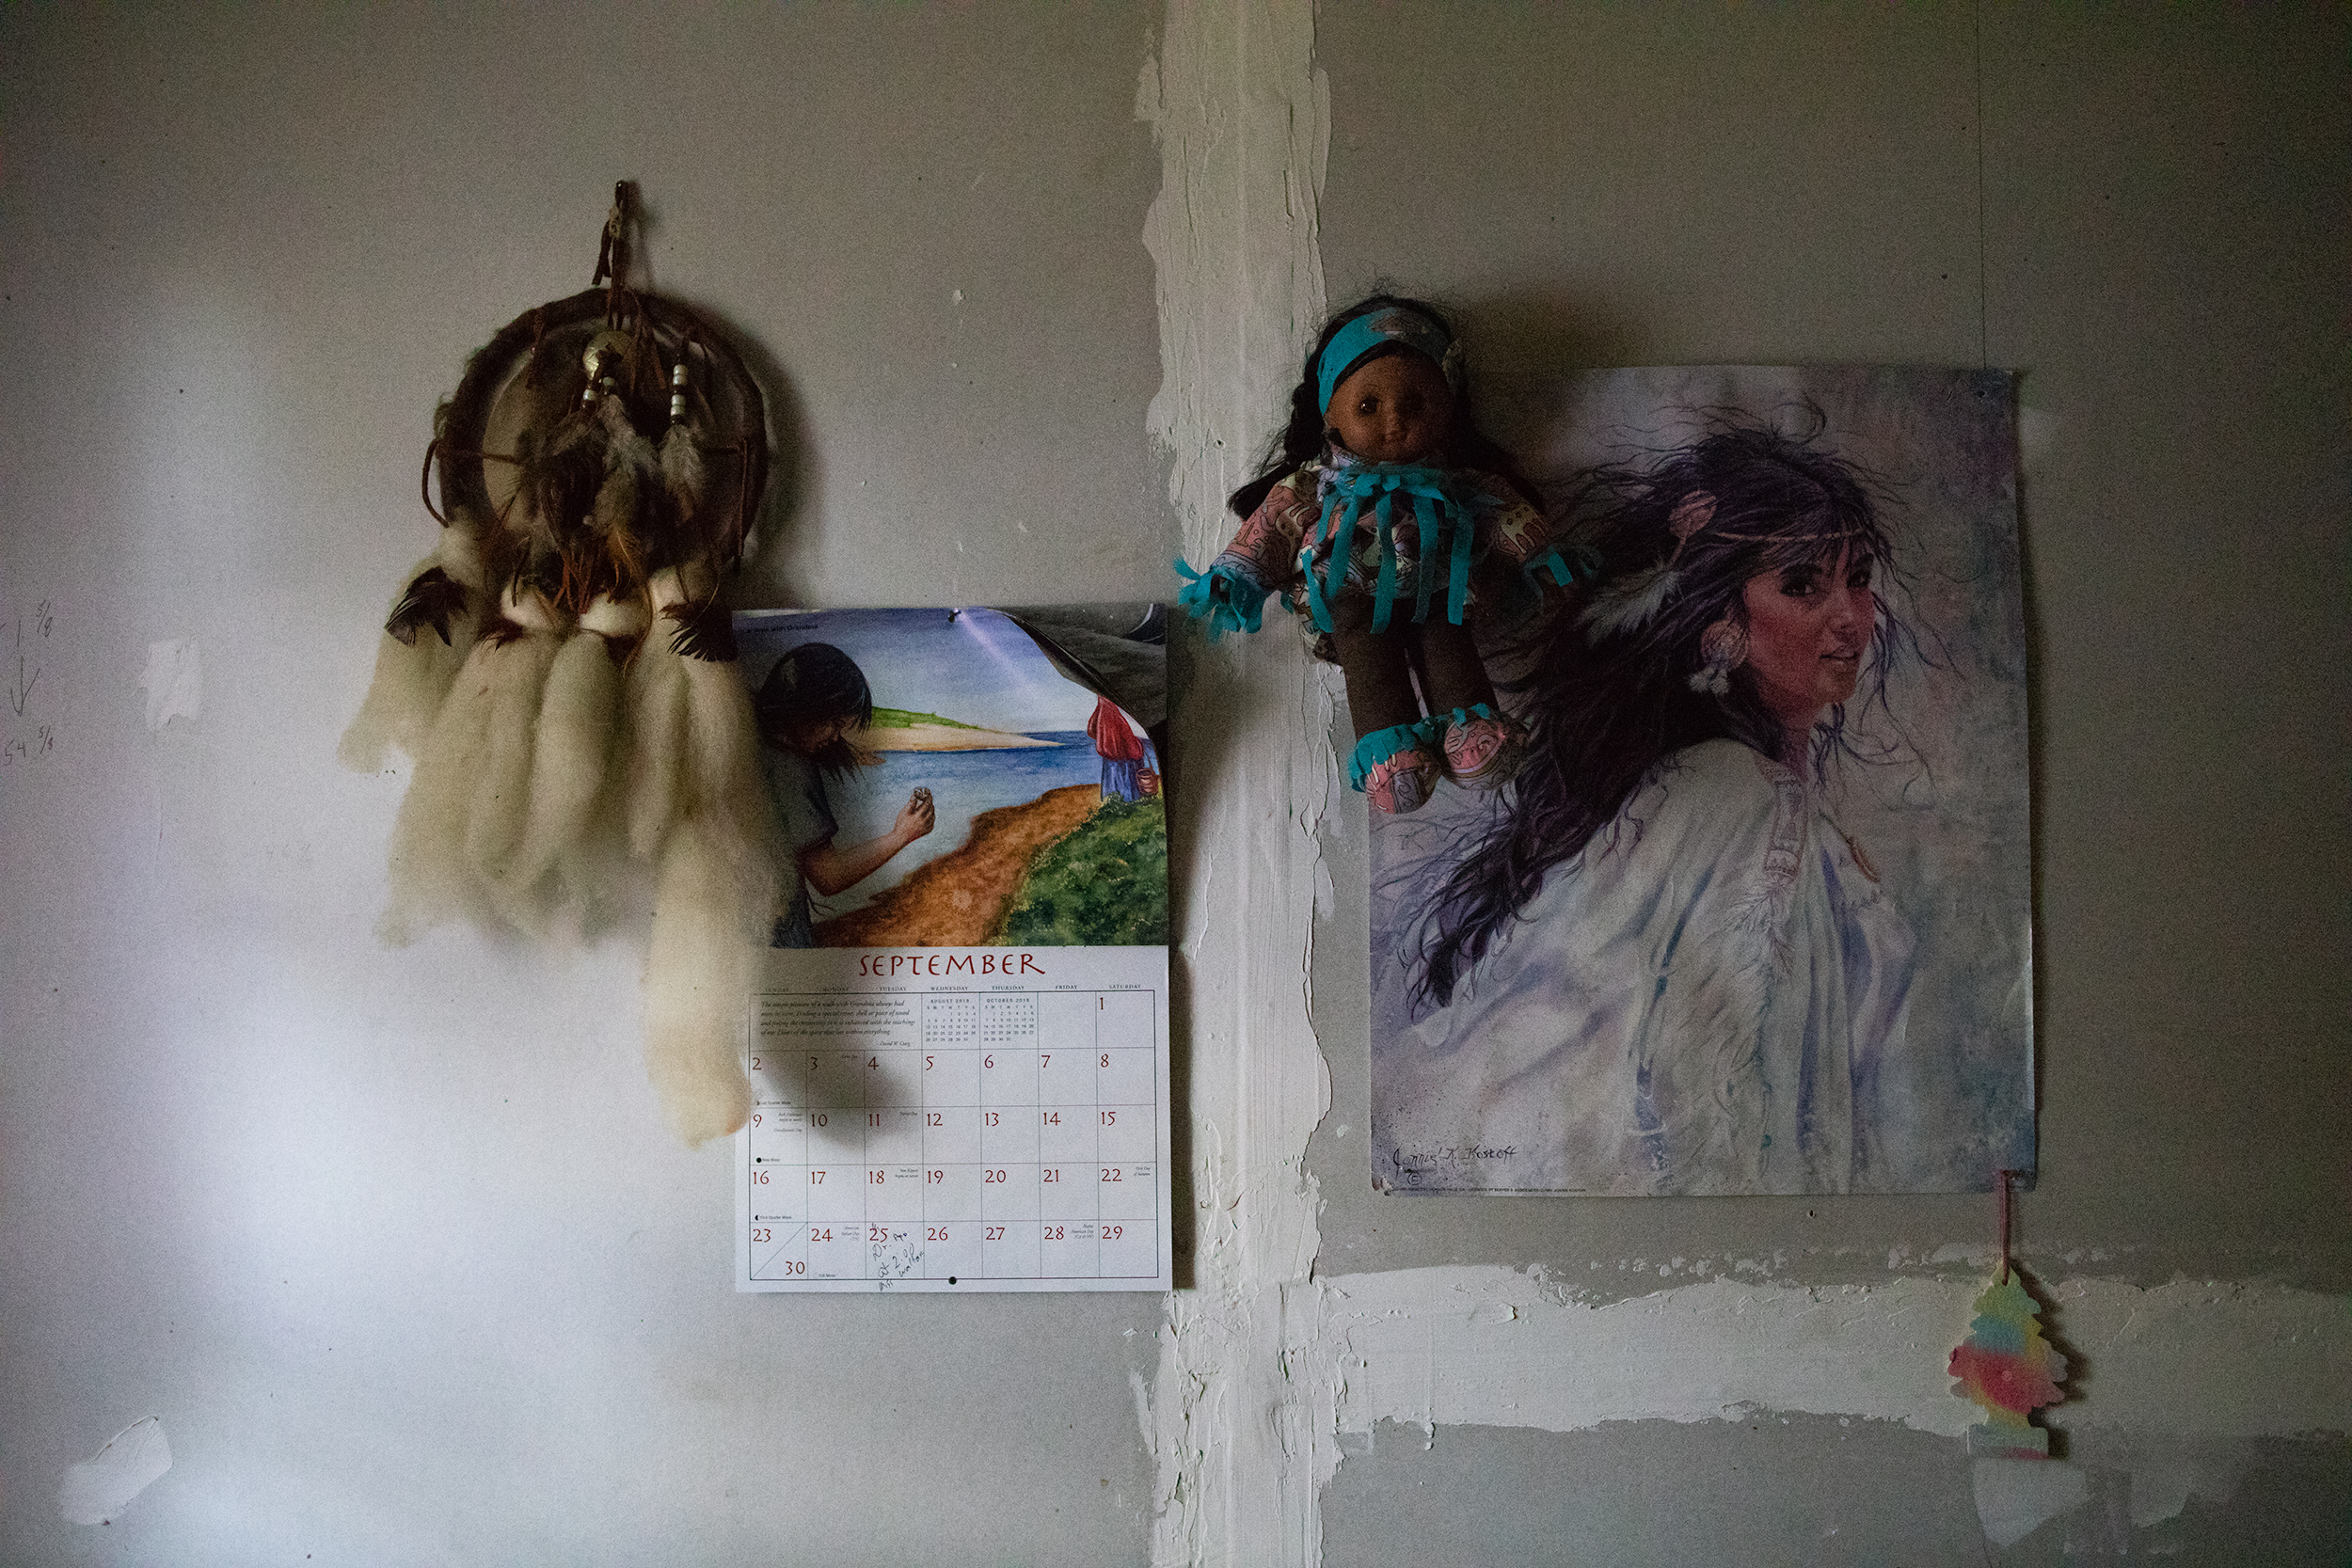 Dreamcatchers and Native American images cover Brenda's bedroom wall. They are reminders of her biological mother who was part Cherokee.